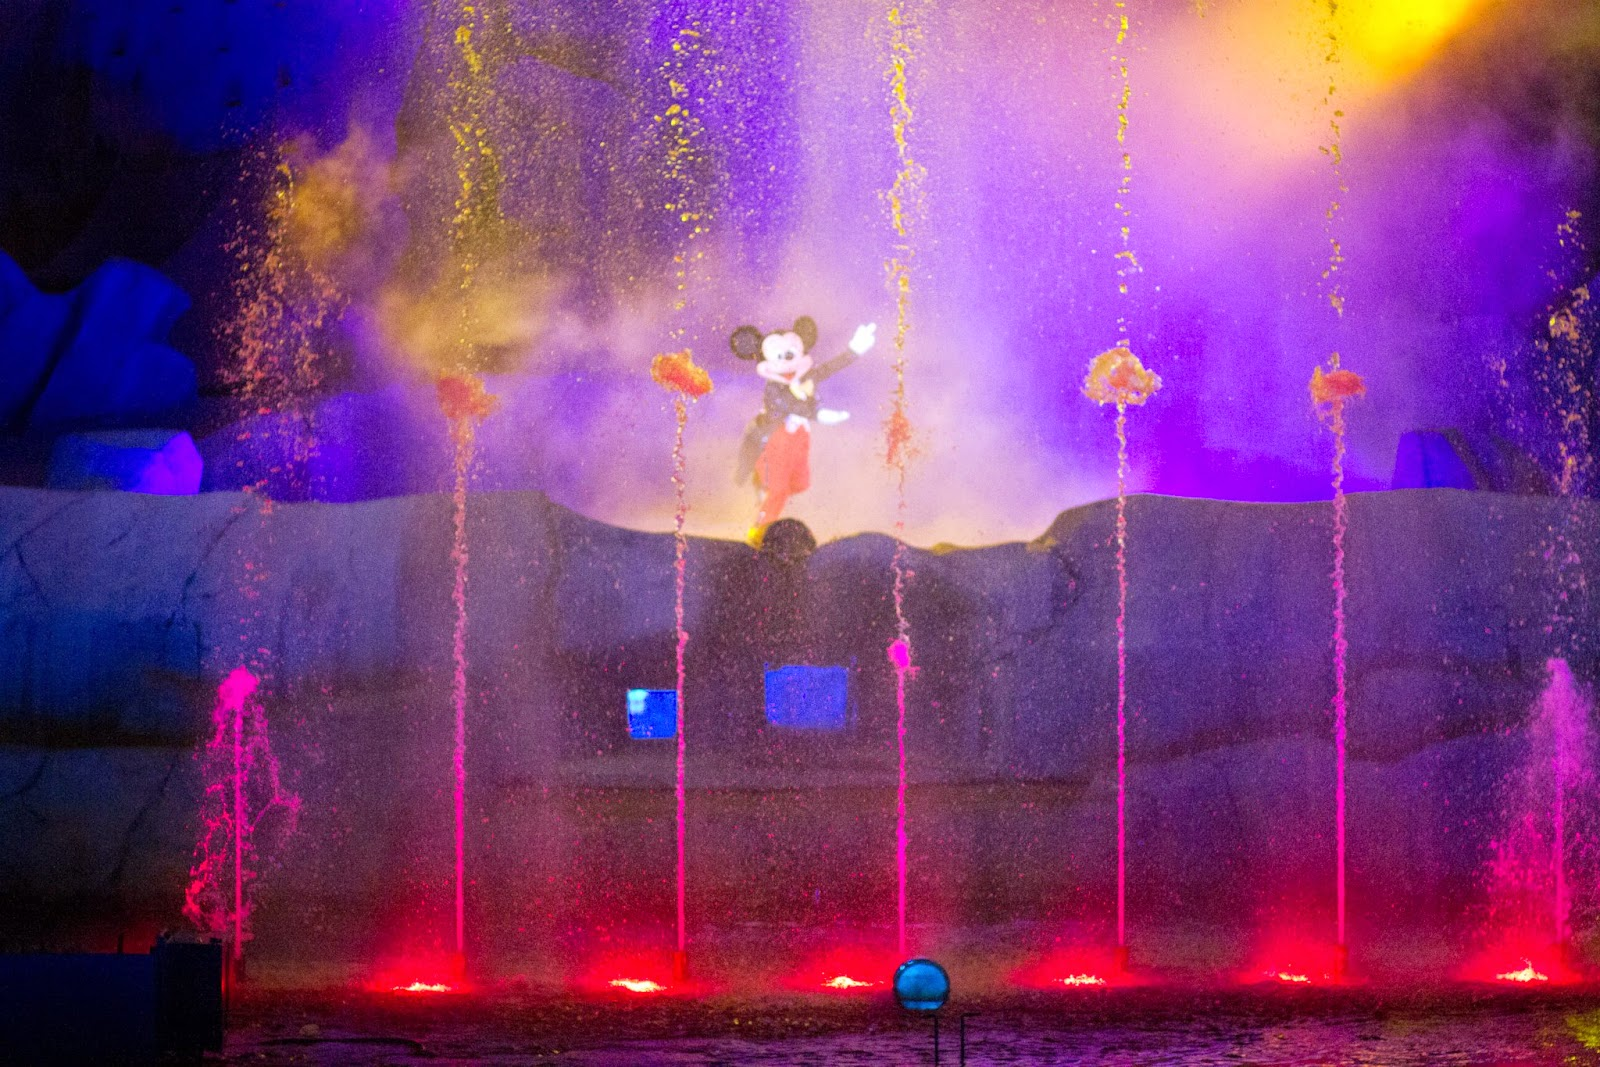 Fantasmic! is one of my favorite night time shows at Disney world